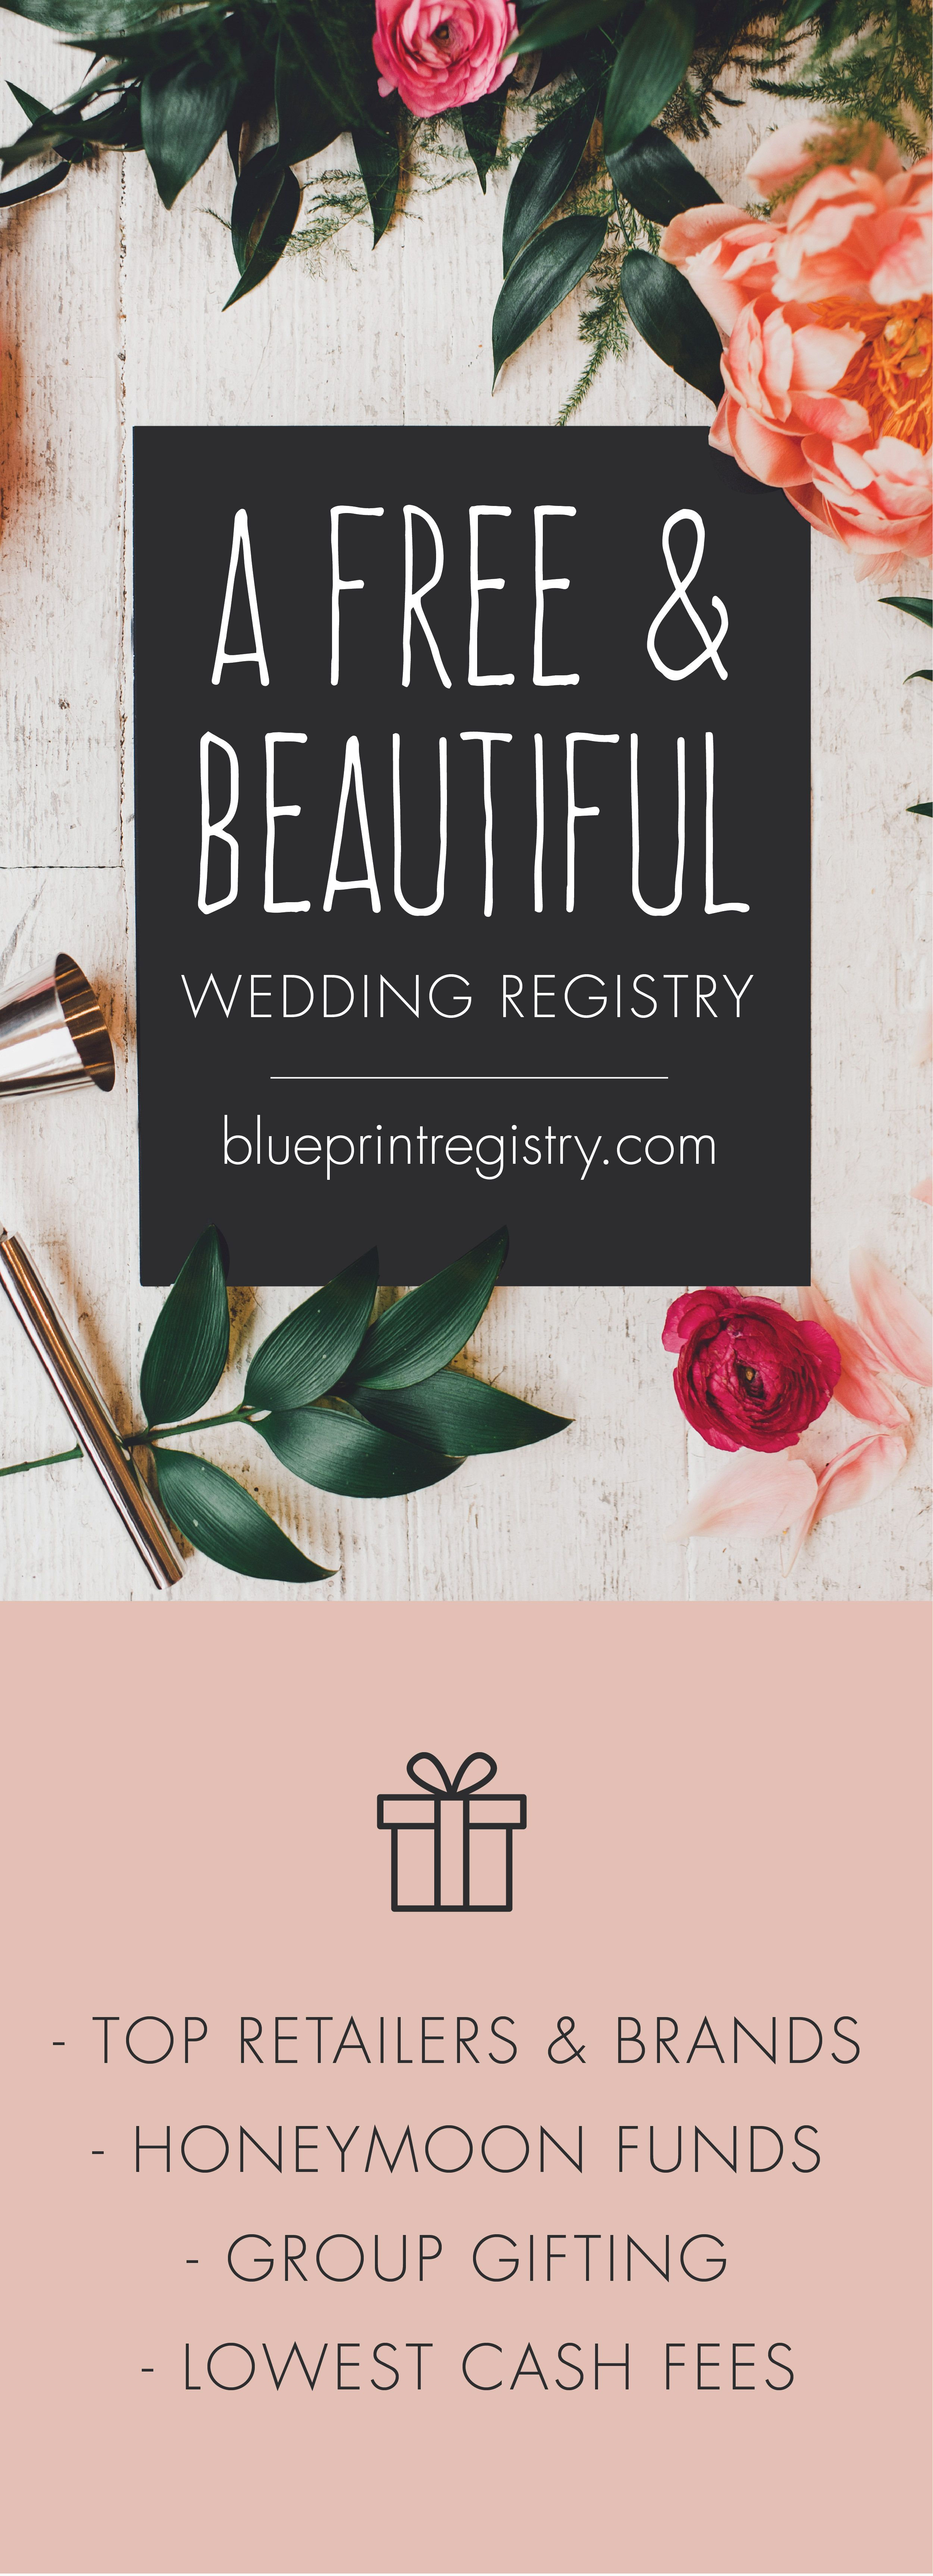 Free beautiful blueprint registry shop top retailers add gifts free beautiful blueprint registry shop top retailers add gifts from any site malvernweather Choice Image